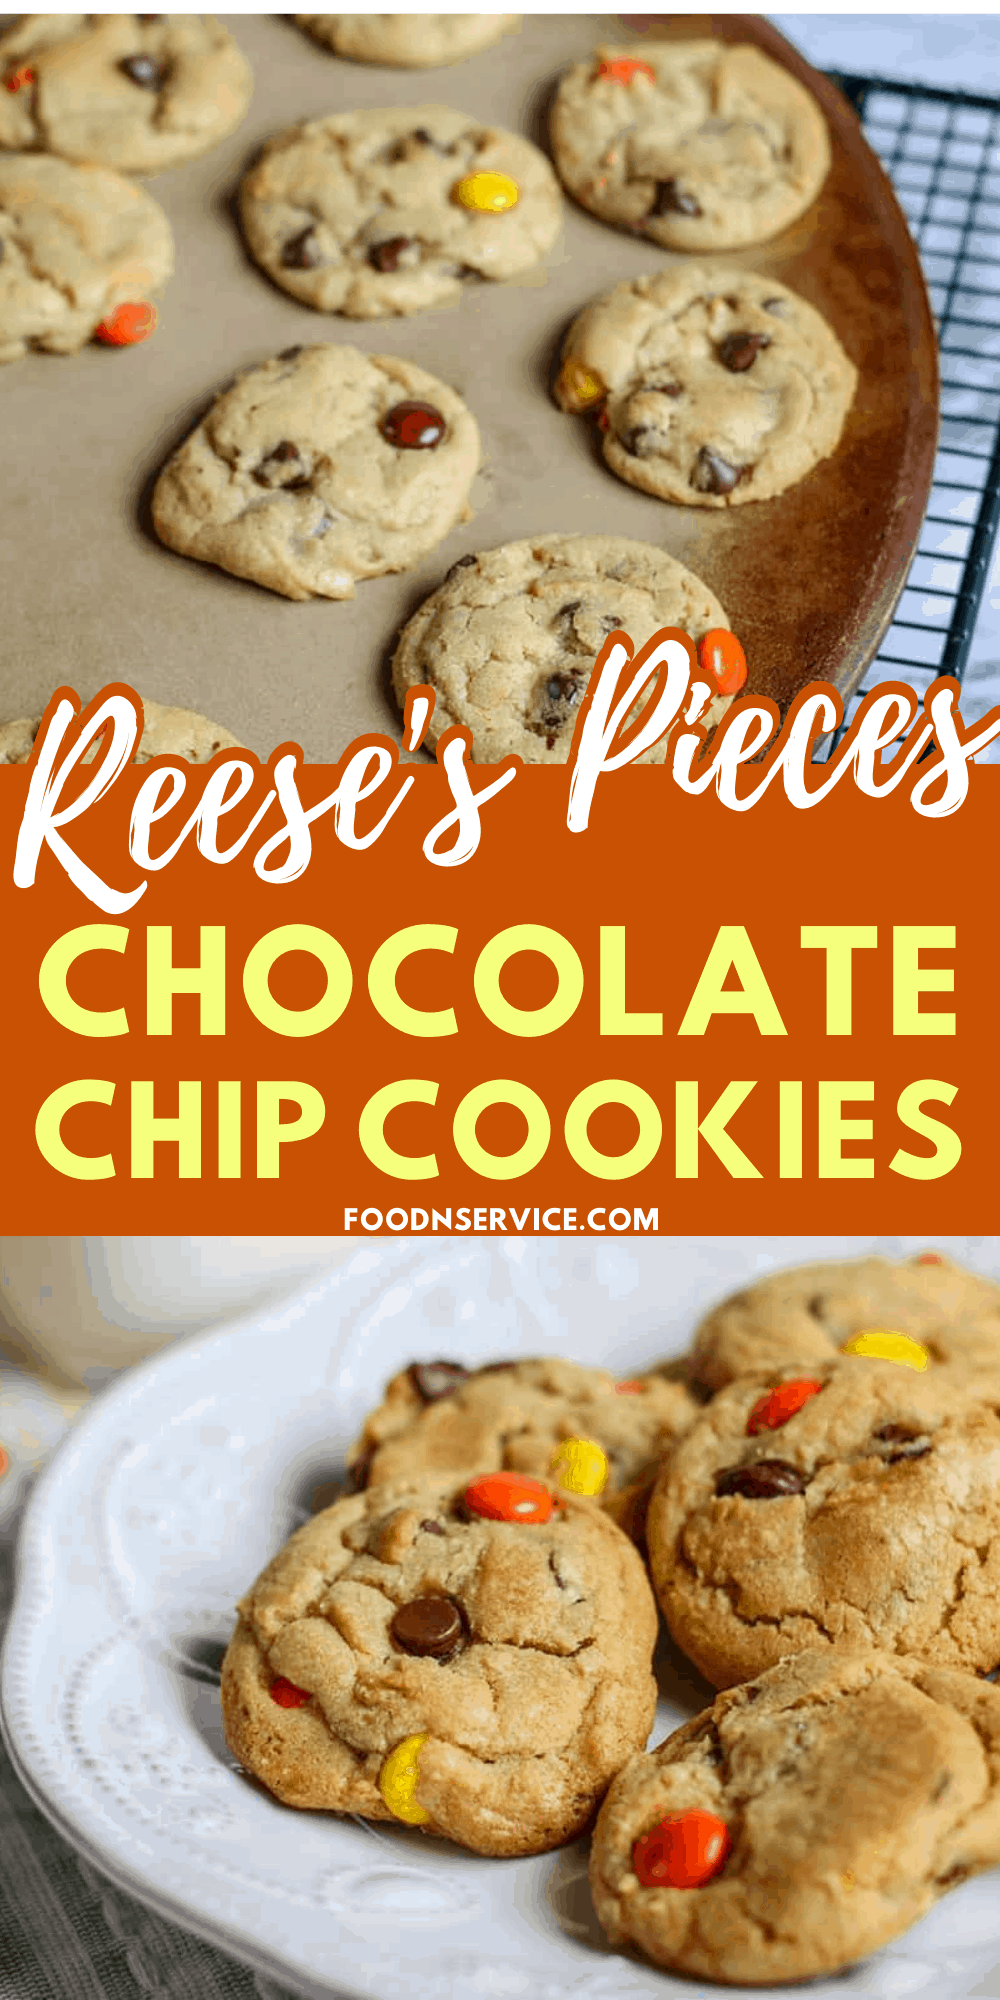 Reeses Pieces Chocolate Chip Cookies